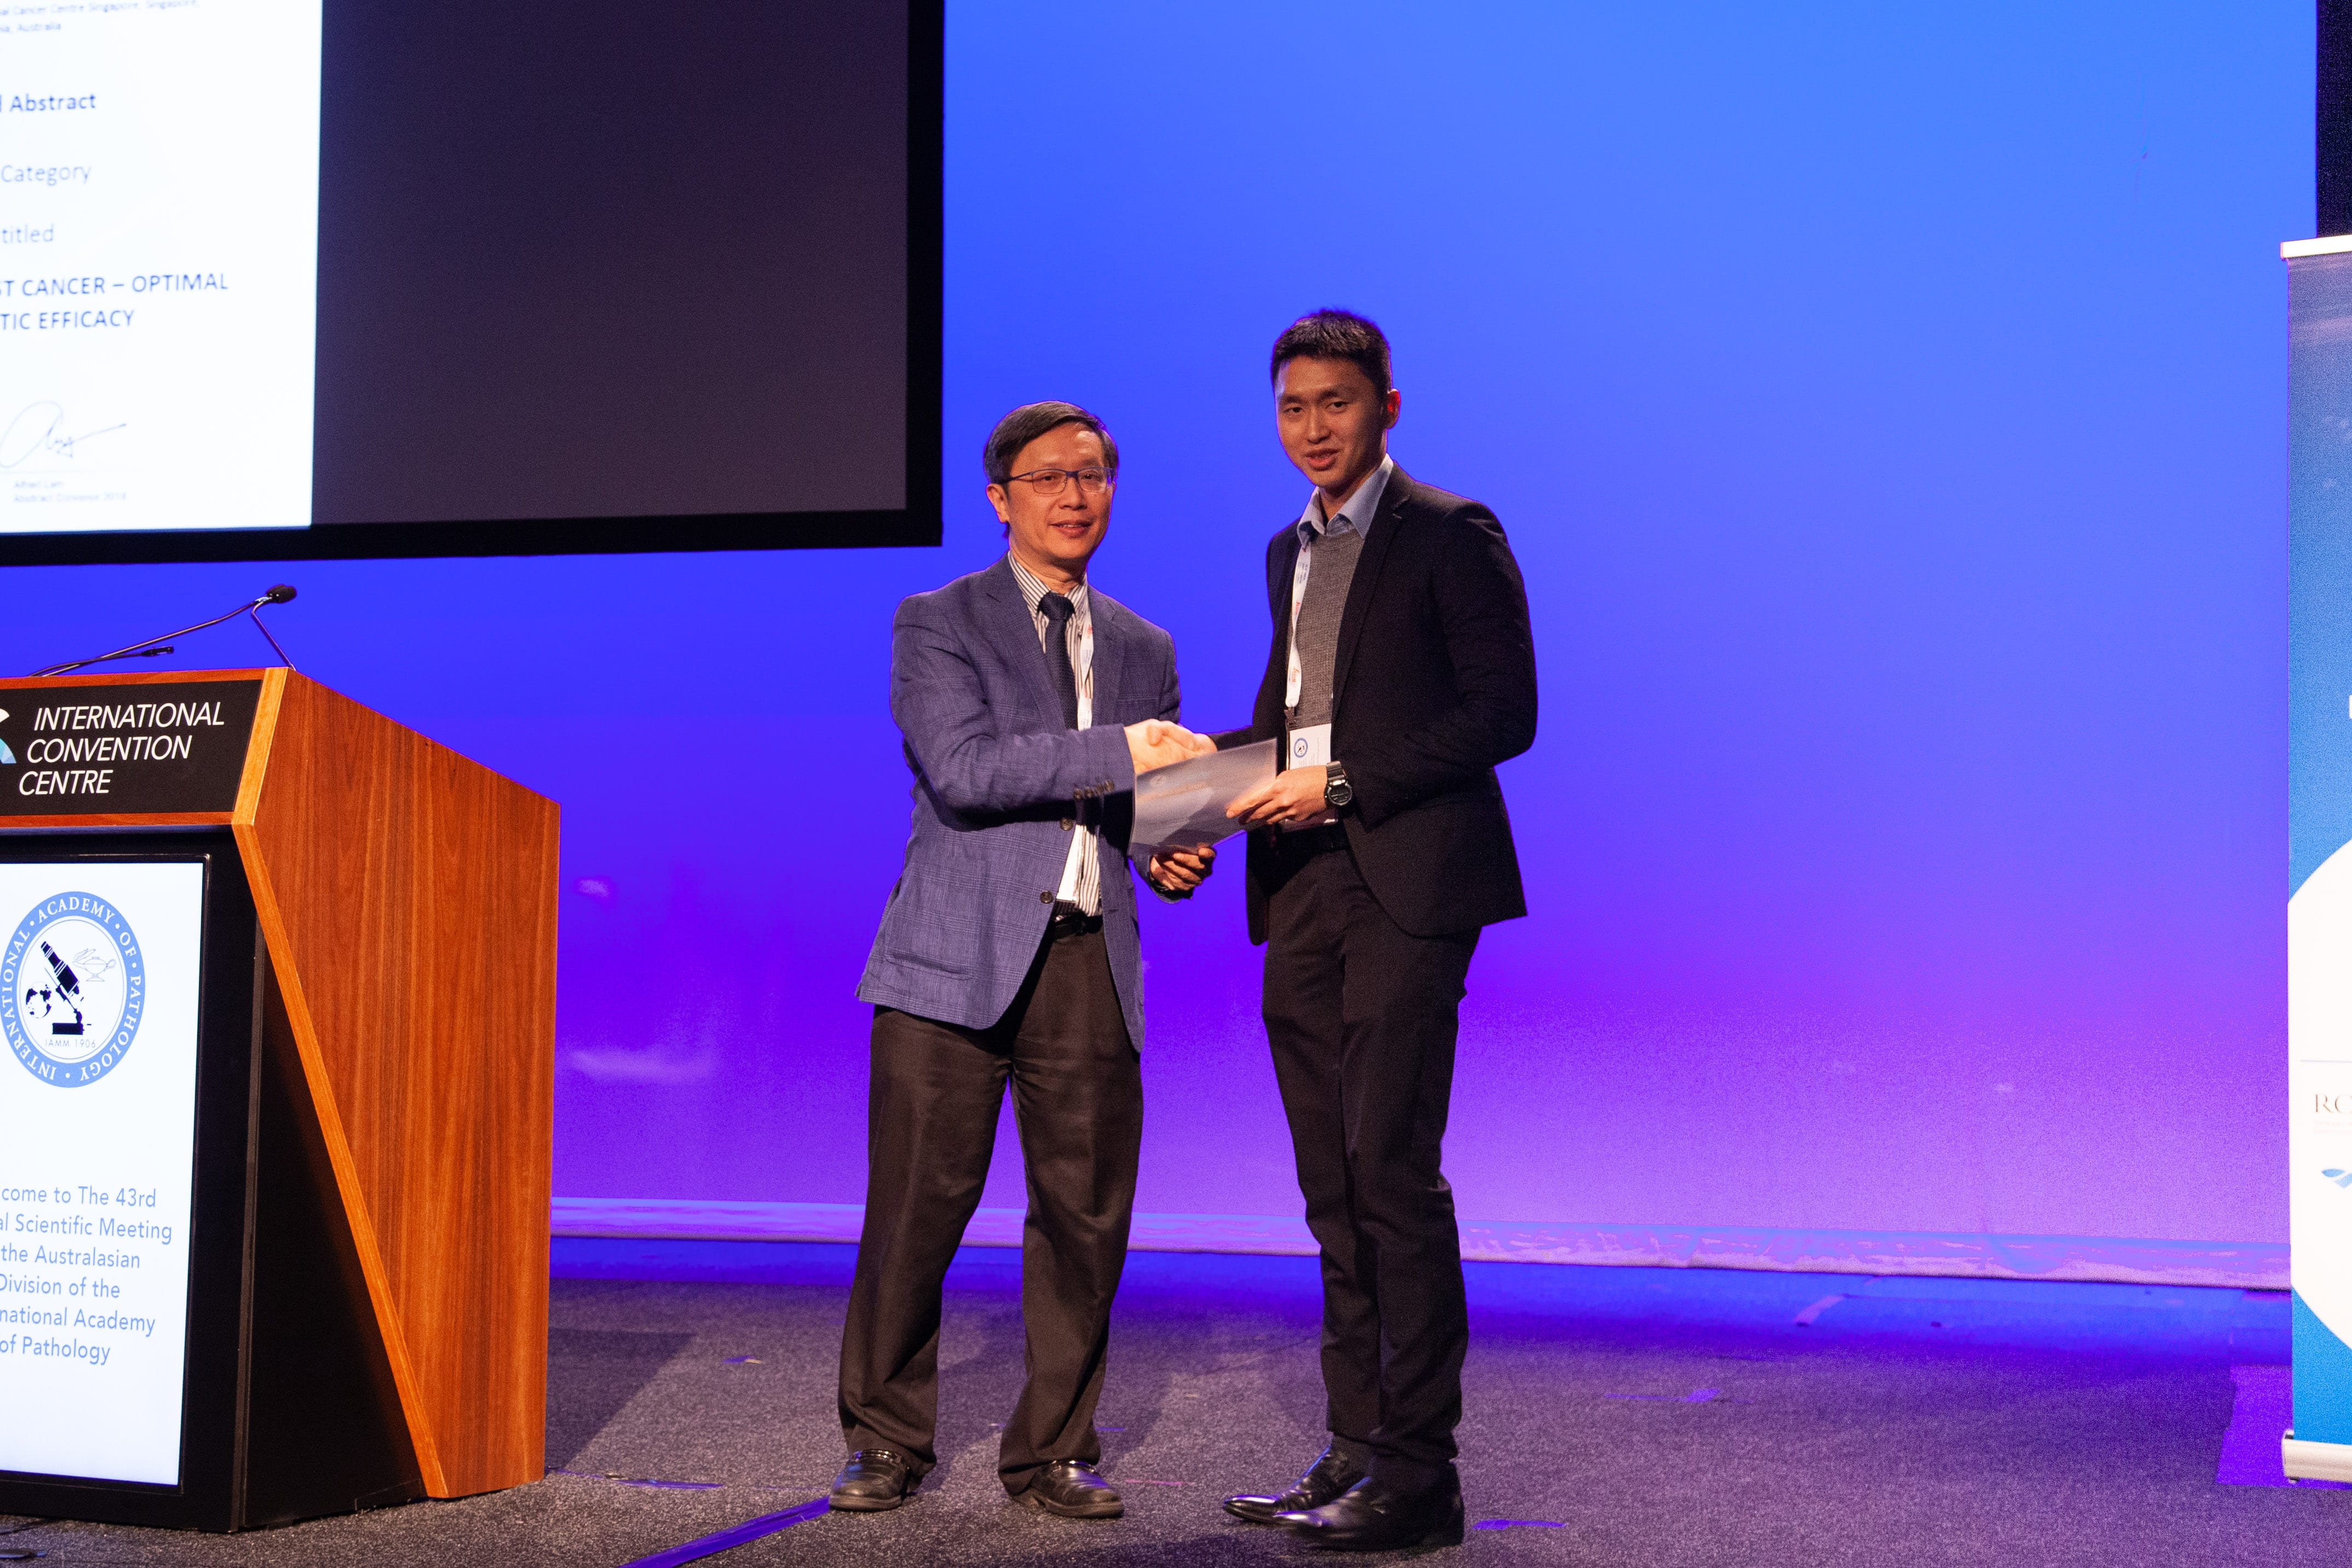 Alfred Lam presenting 1st Commentation Prize Winner in Abstract Poster Registrar Category to Zi Long Chow